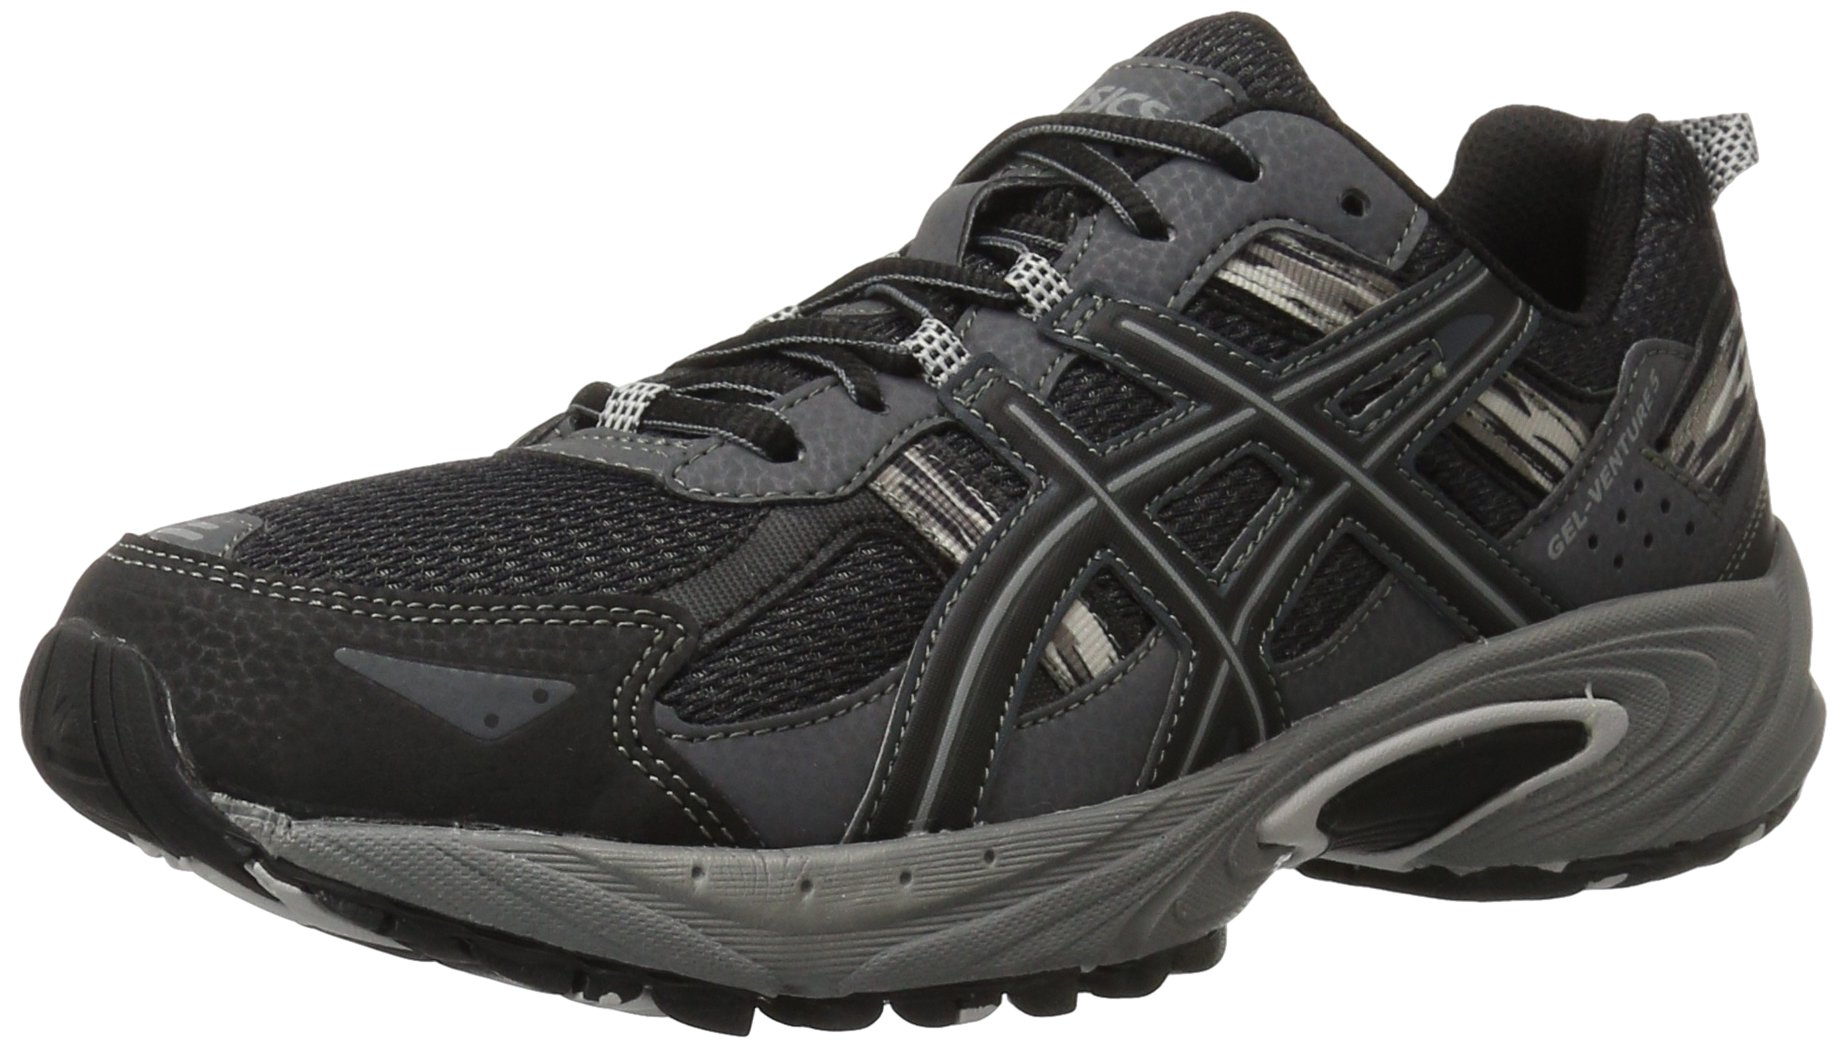 ASICS Men's Gel Venture 5 Running Shoe, Black/Onyx/Charcoal, 9 4E